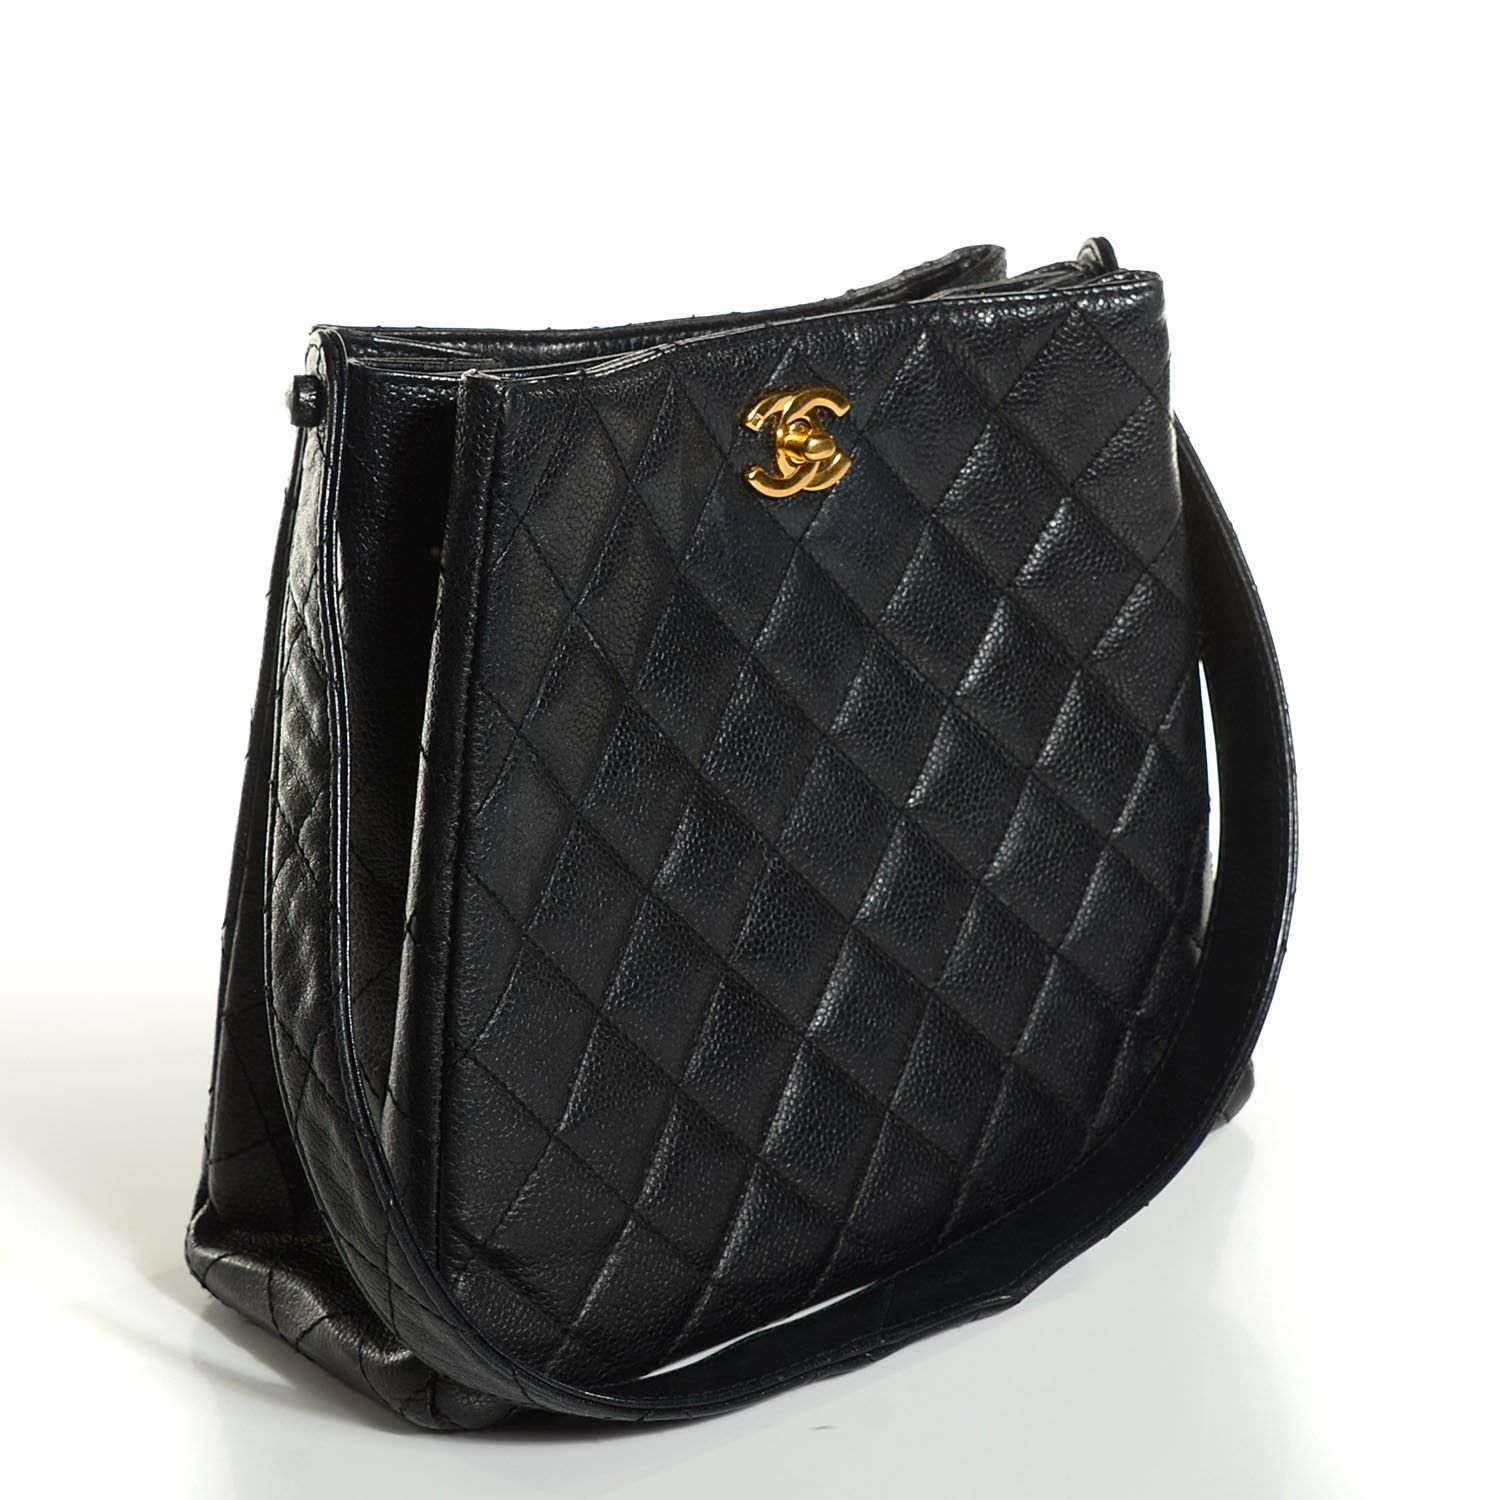 This is an authentic CHANEL Vintage Caviar Quilted CC Shoulder Bag in Black.  This stylish shoulder bag is crafted of fine diamond quilted caviar leather.  The bag features a singleshoulder strap and an upper gold Chanel CC Mademoiselle turn lock on each side.  This opens the top to a spacious partitioned leather interior with a zipper and patchpocket.  This is a marvelous shoulder bag, ideal for day and evening wear, from Chanel!